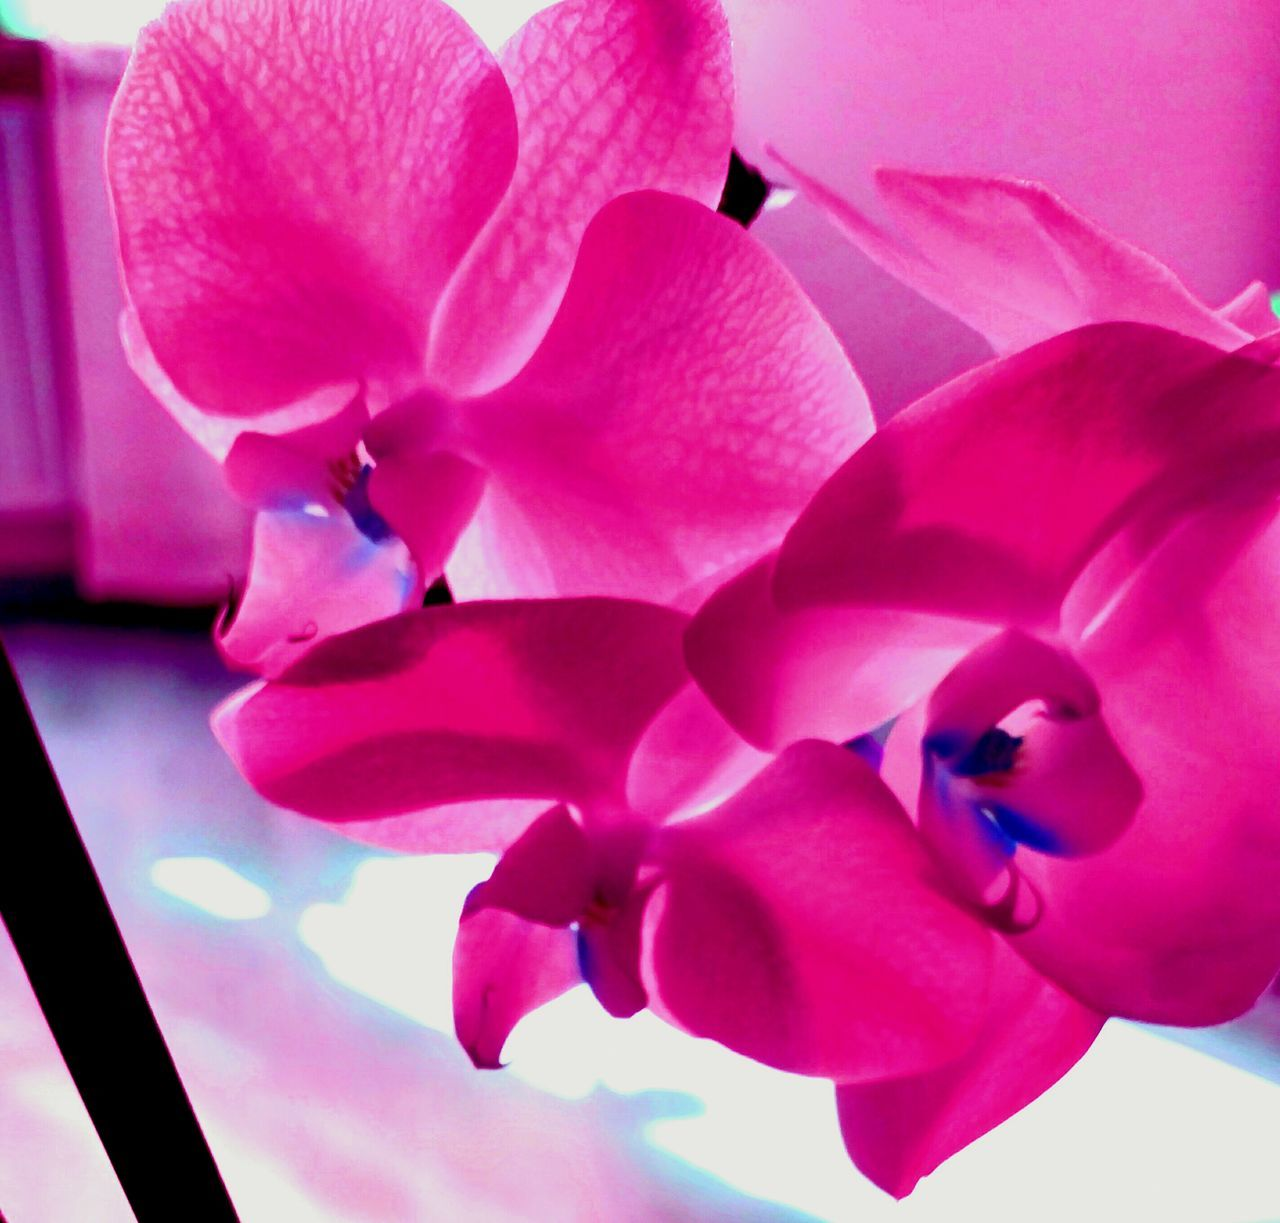 pink color, petal, flower, beauty in nature, no people, close-up, nature, growth, fragility, flower head, day, indoors, freshness